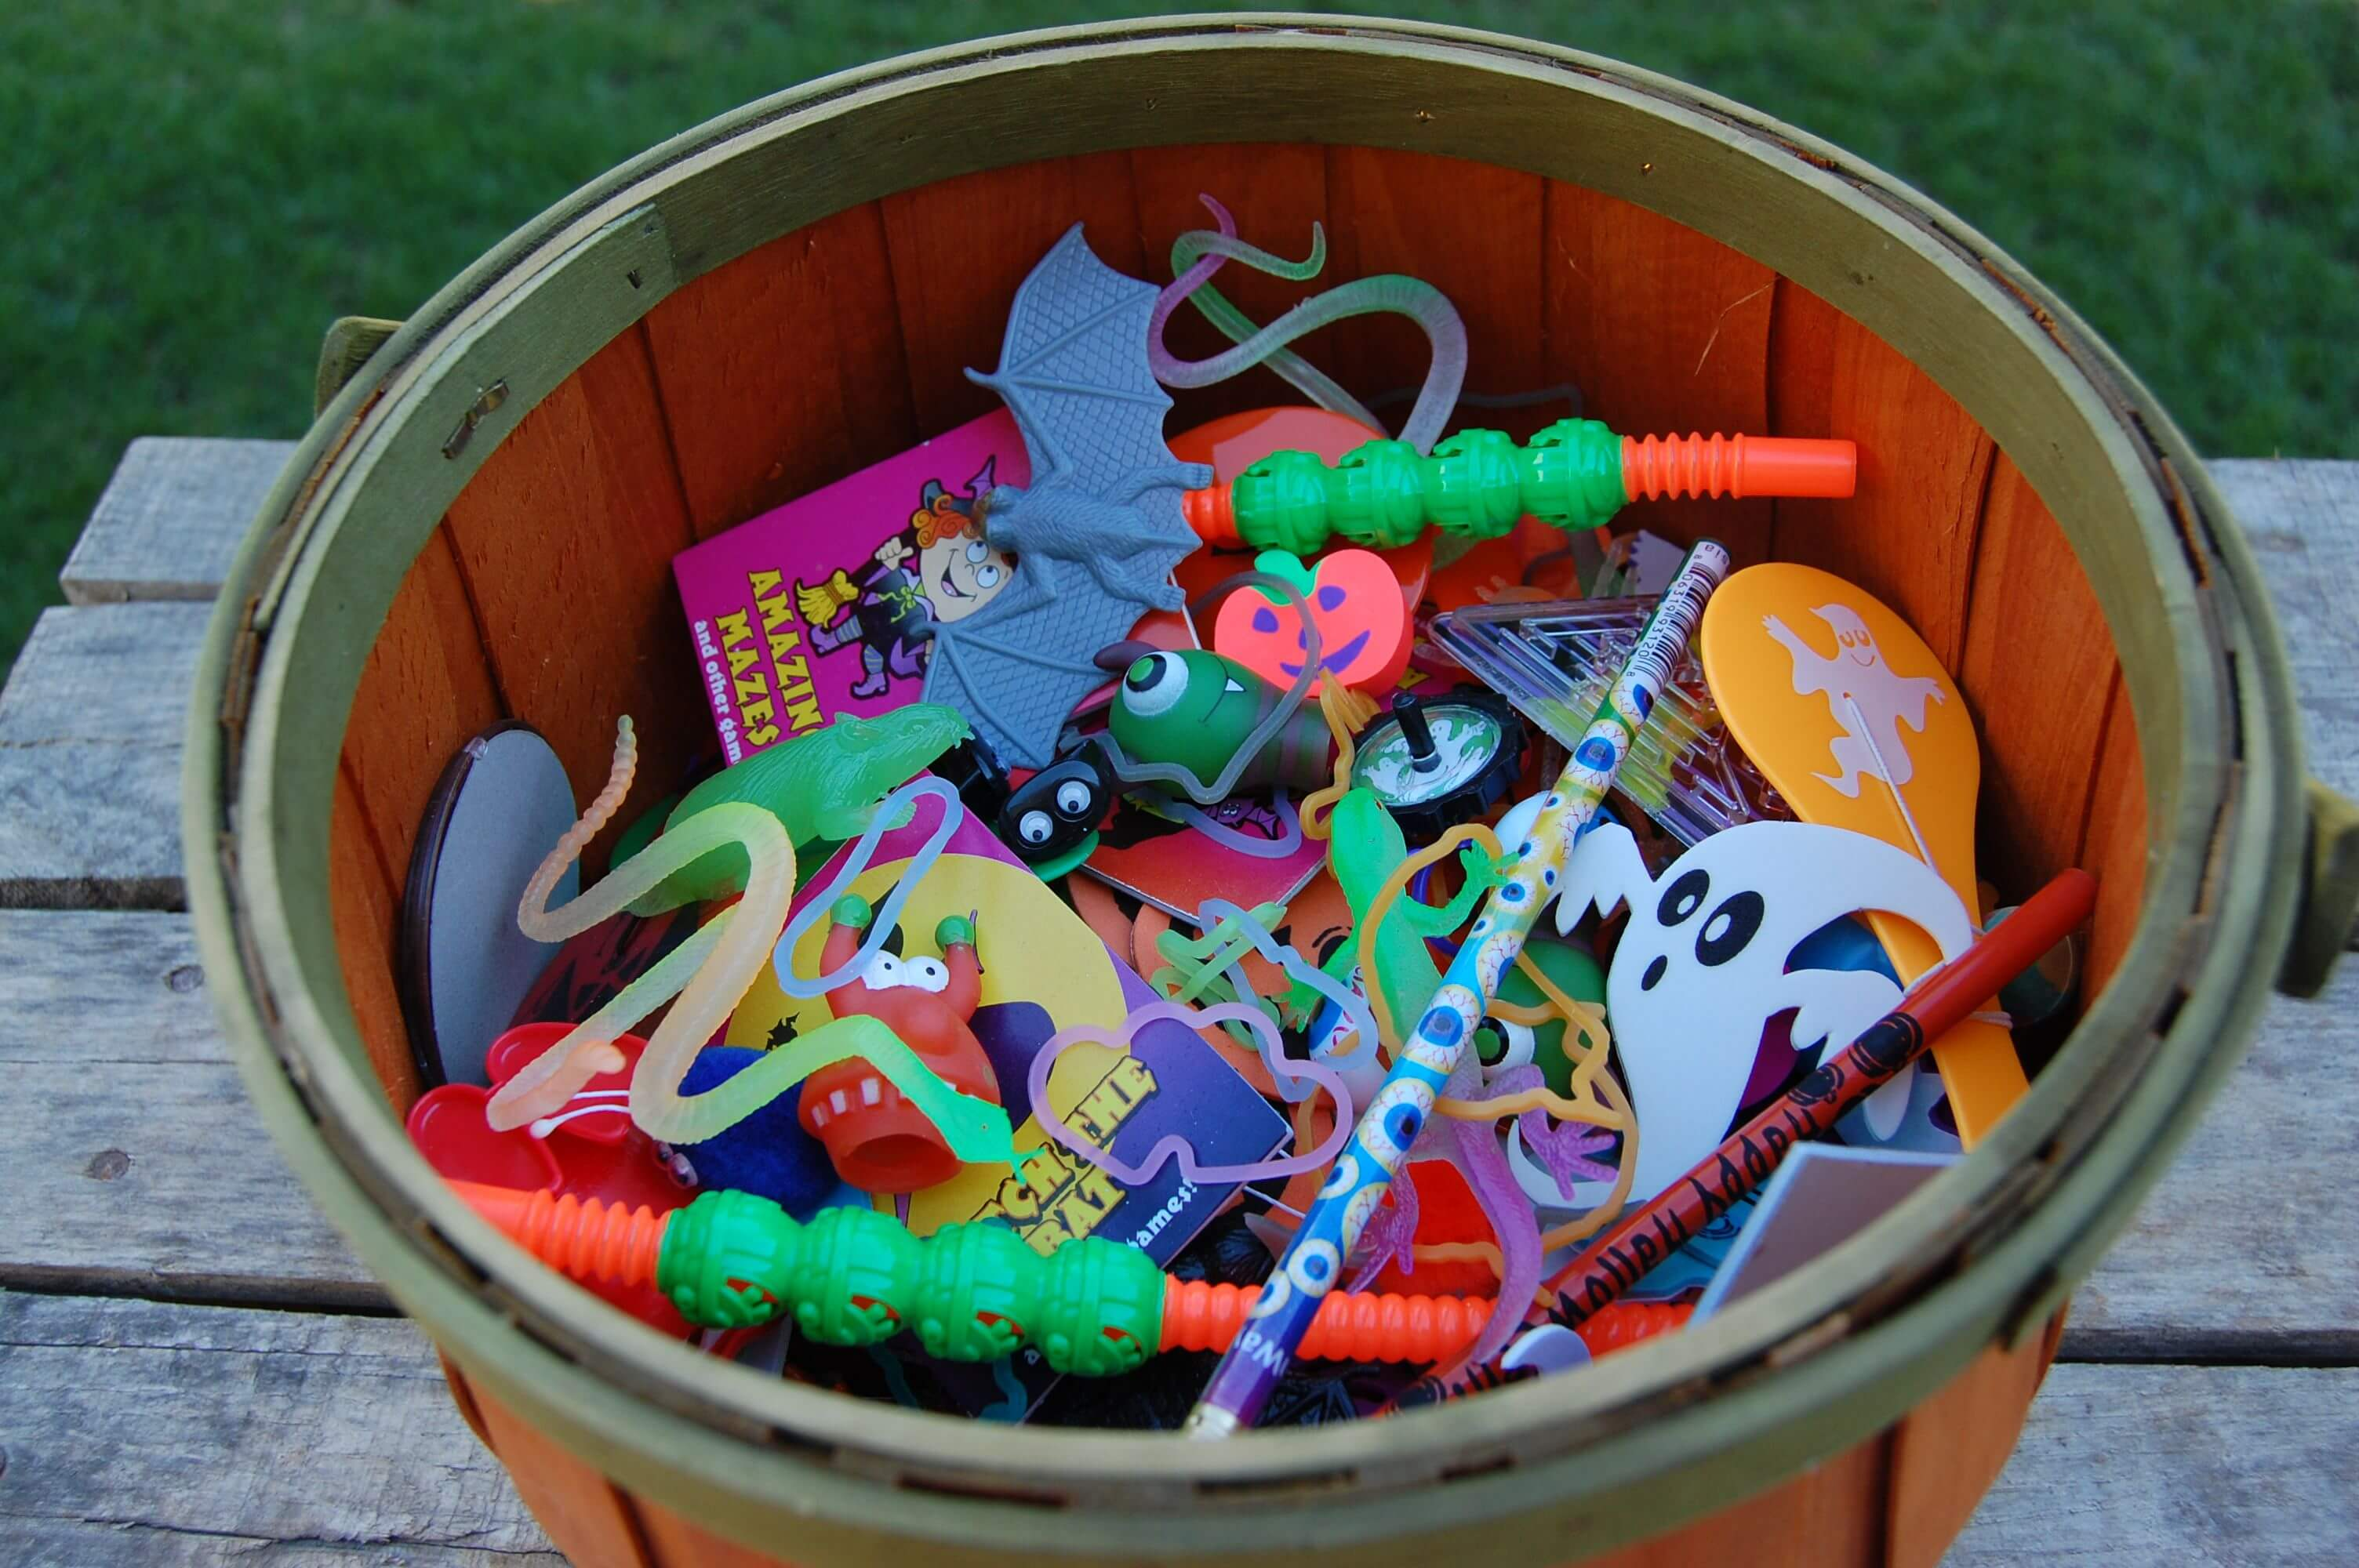 A bin full of small kid toys for halloween.